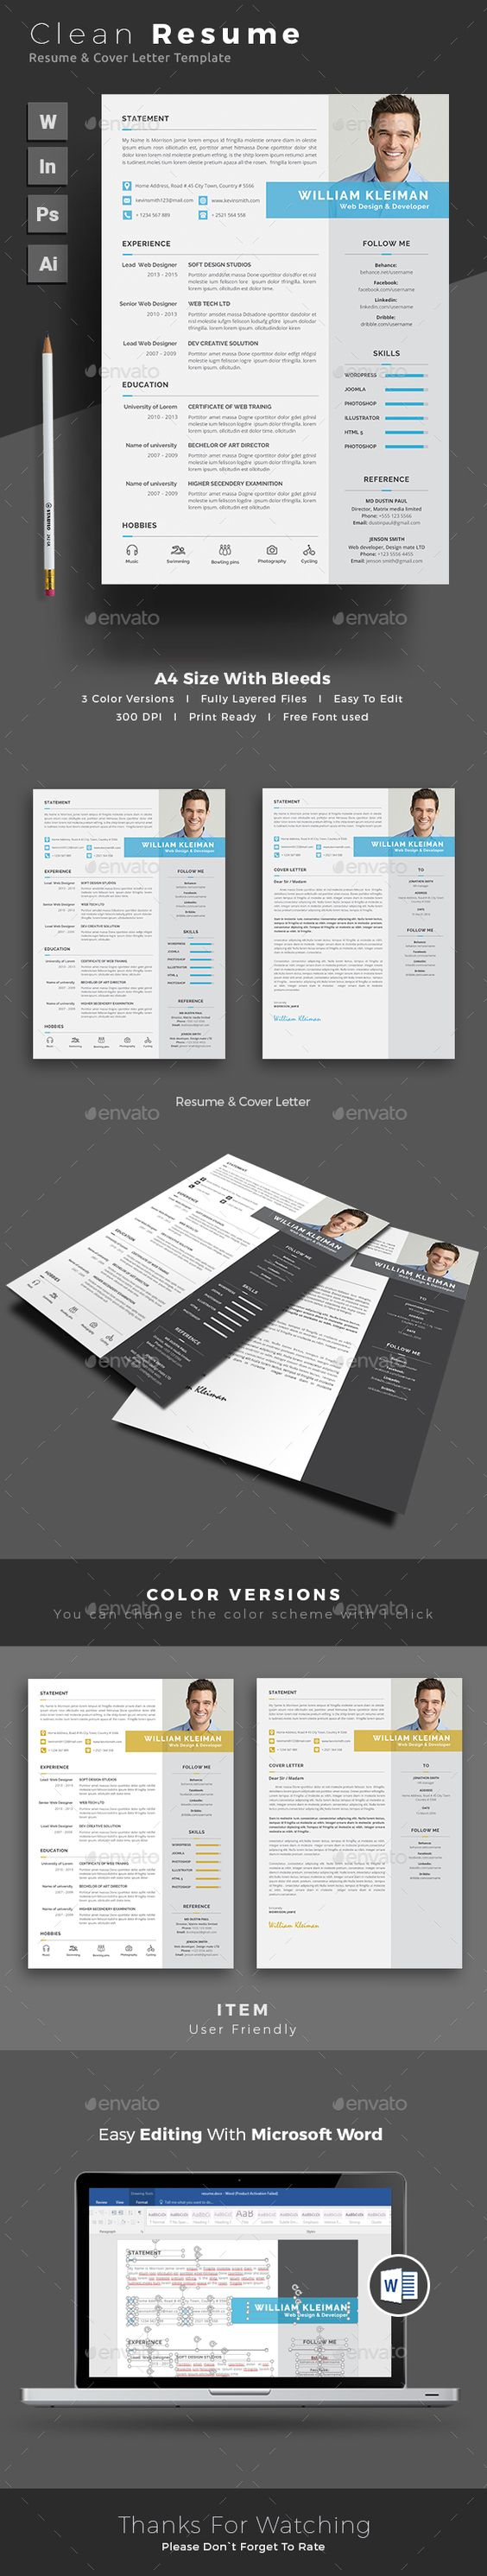 resume resume resumes stationery here graphicriver net